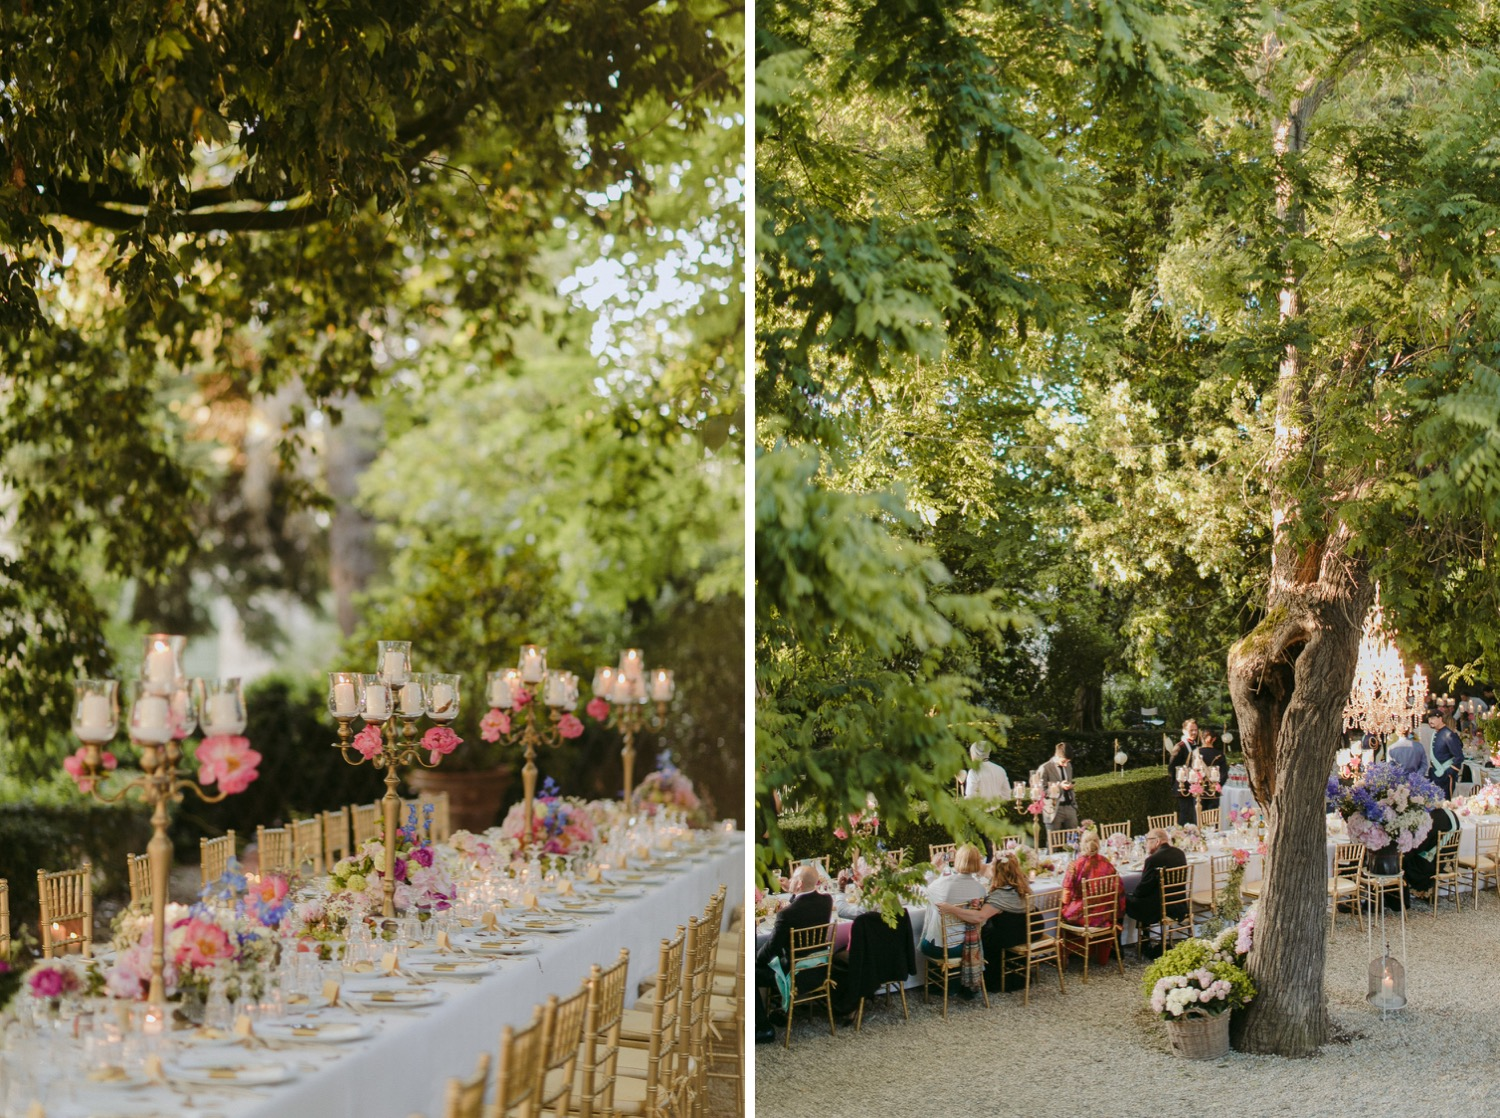 Reception details and tabletop flowers